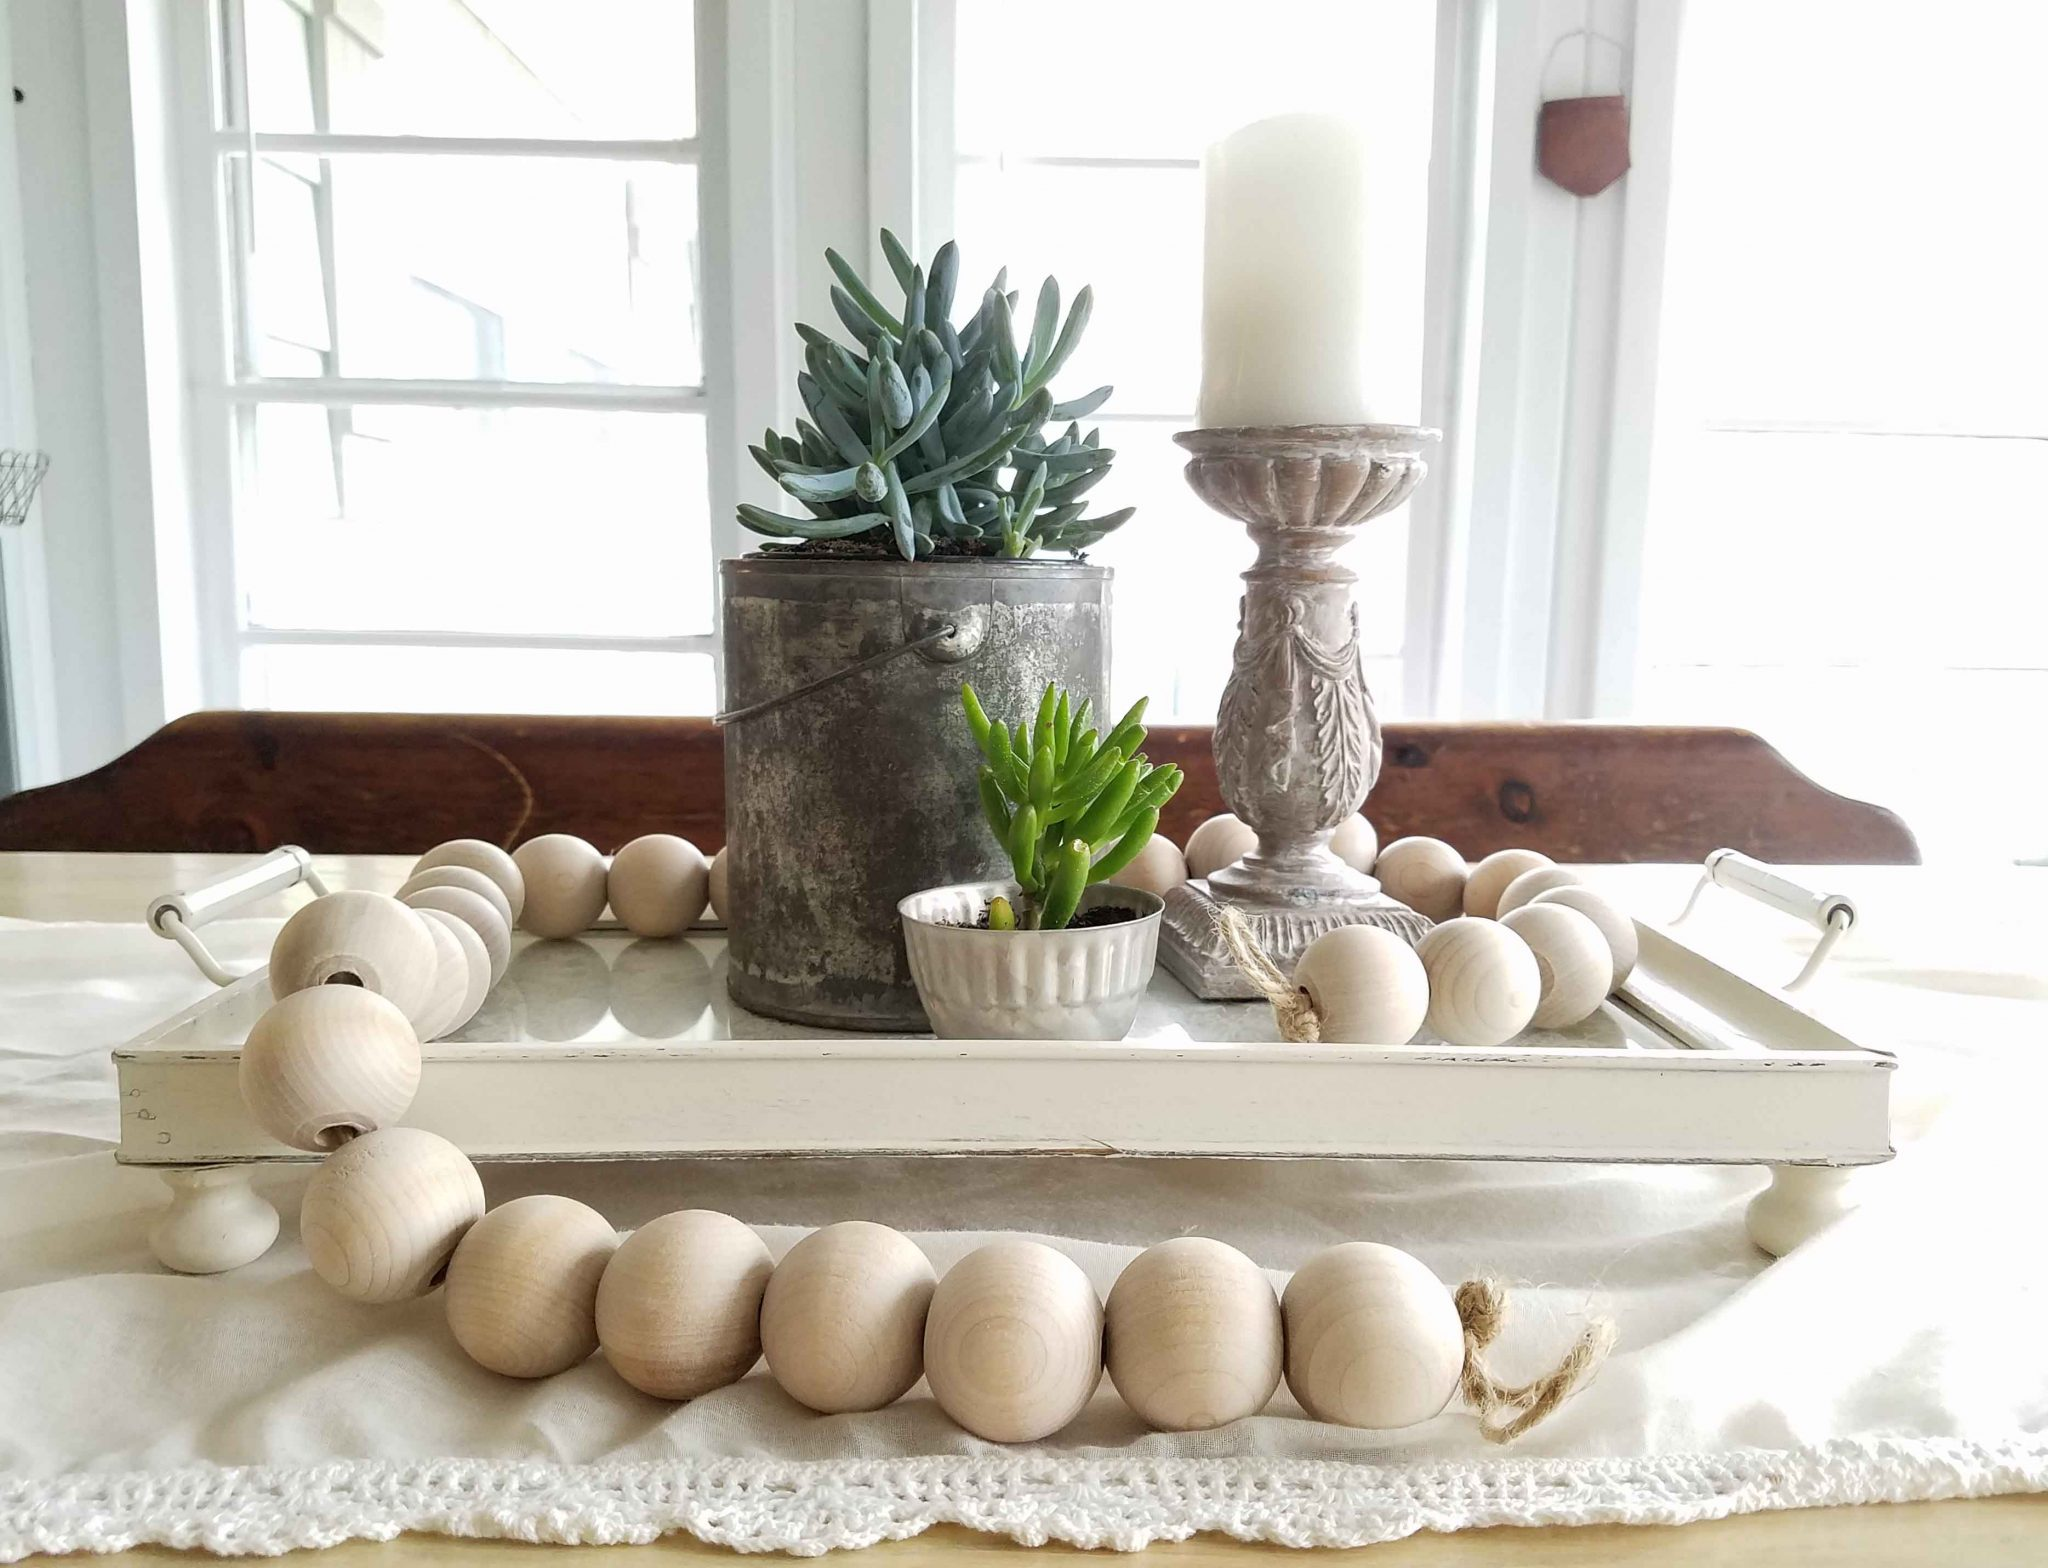 DIY Thrifted Tray Makeover by Prodigal Pieces | prodigalpieces.com